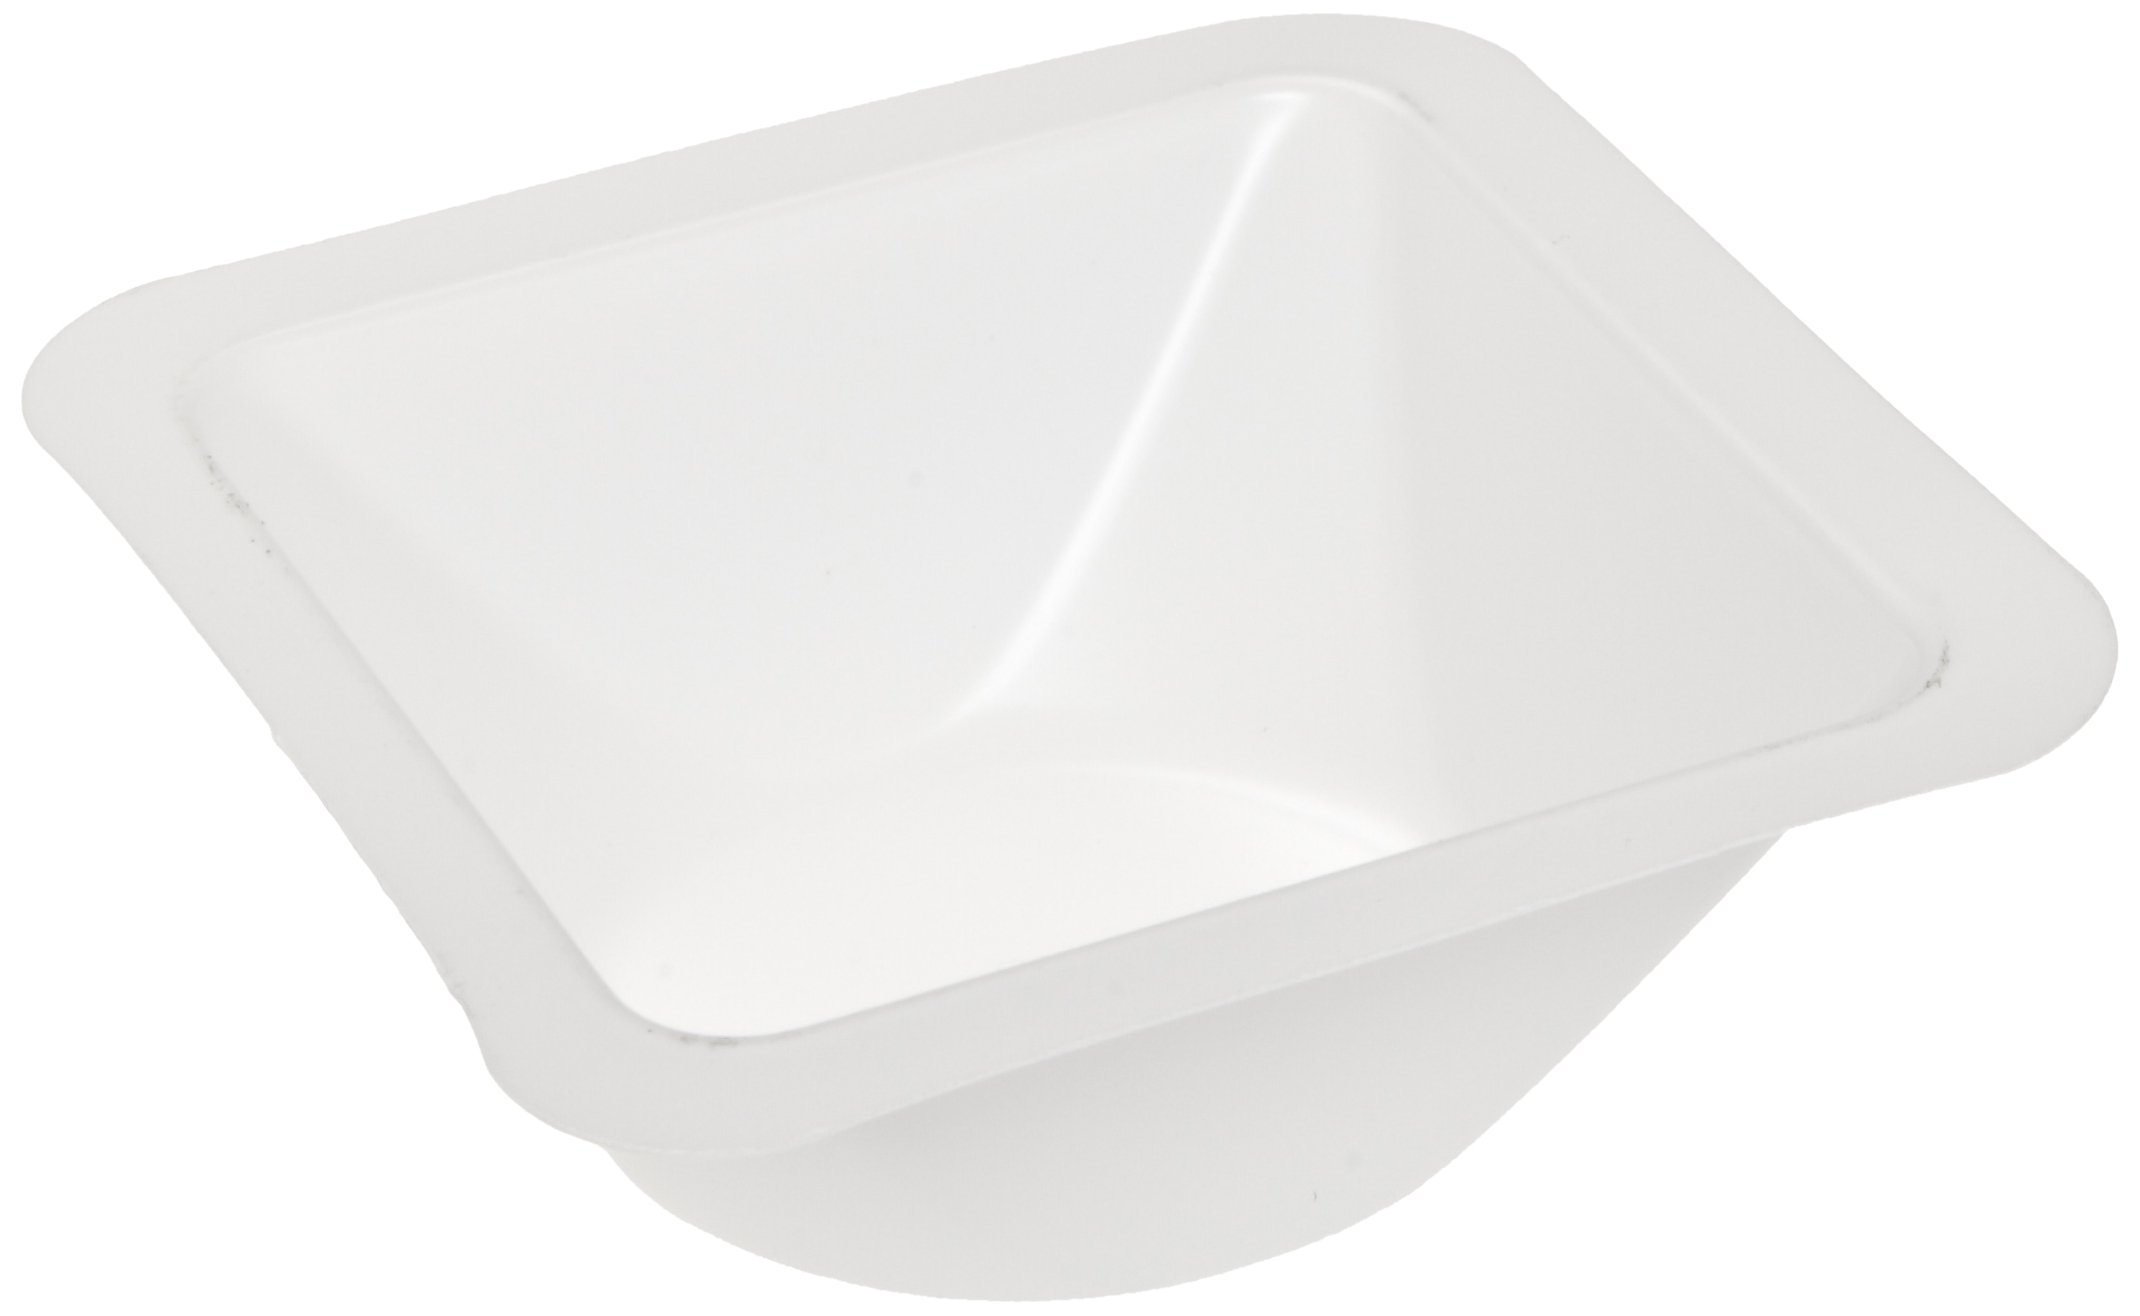 Heathrow Scientific HS1420A Standard Weighing Boat, Polystyrene, Small, 46 mm Length x 46 mm Width x 8 mm Depth, White (Pack of 500)